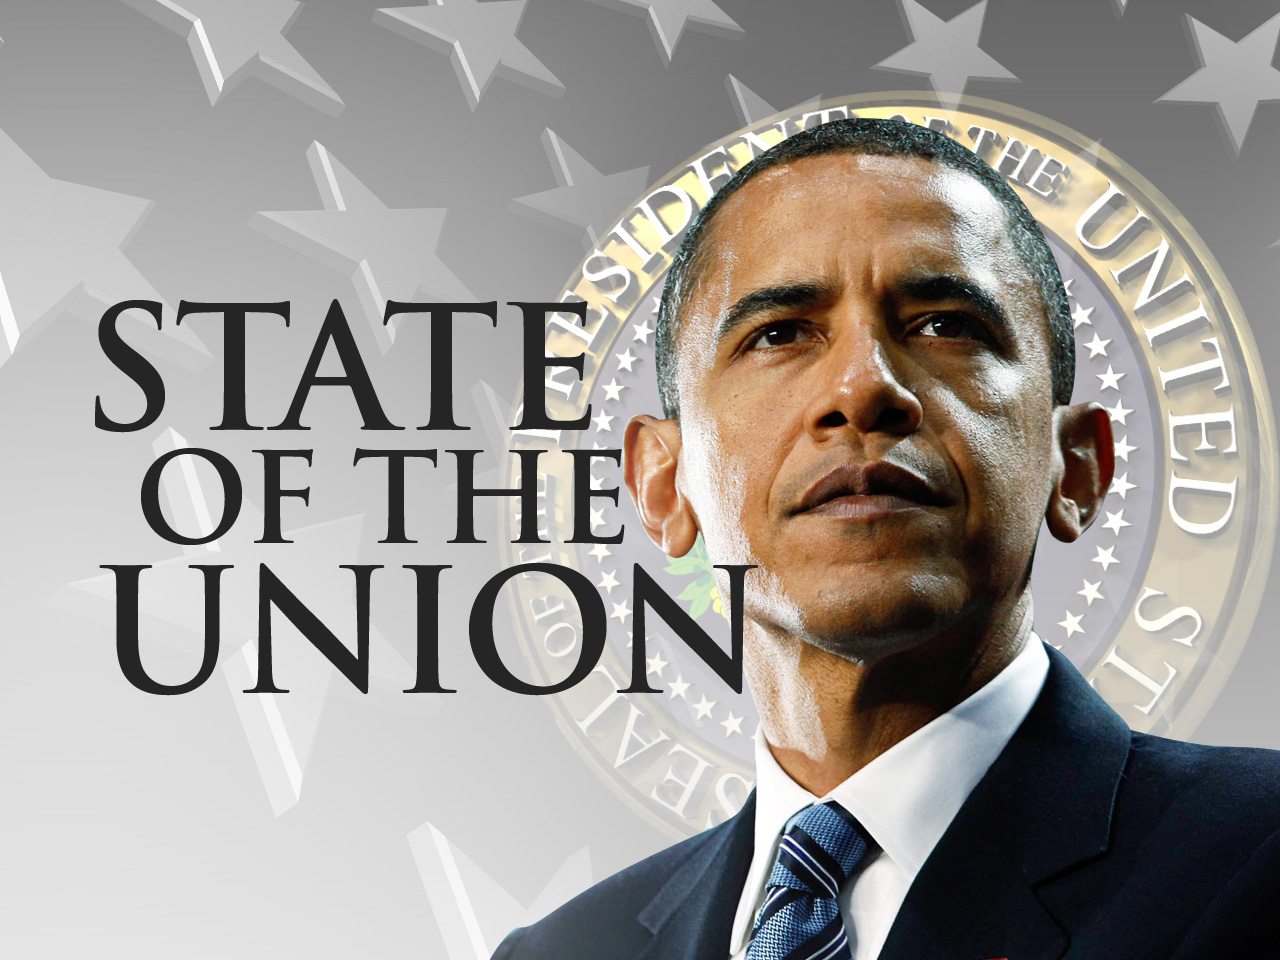 an analysis of the presidents state house union speech Free essay on analysis of president bush's state of the union address available totally free at echeatcom, the largest free essay community.